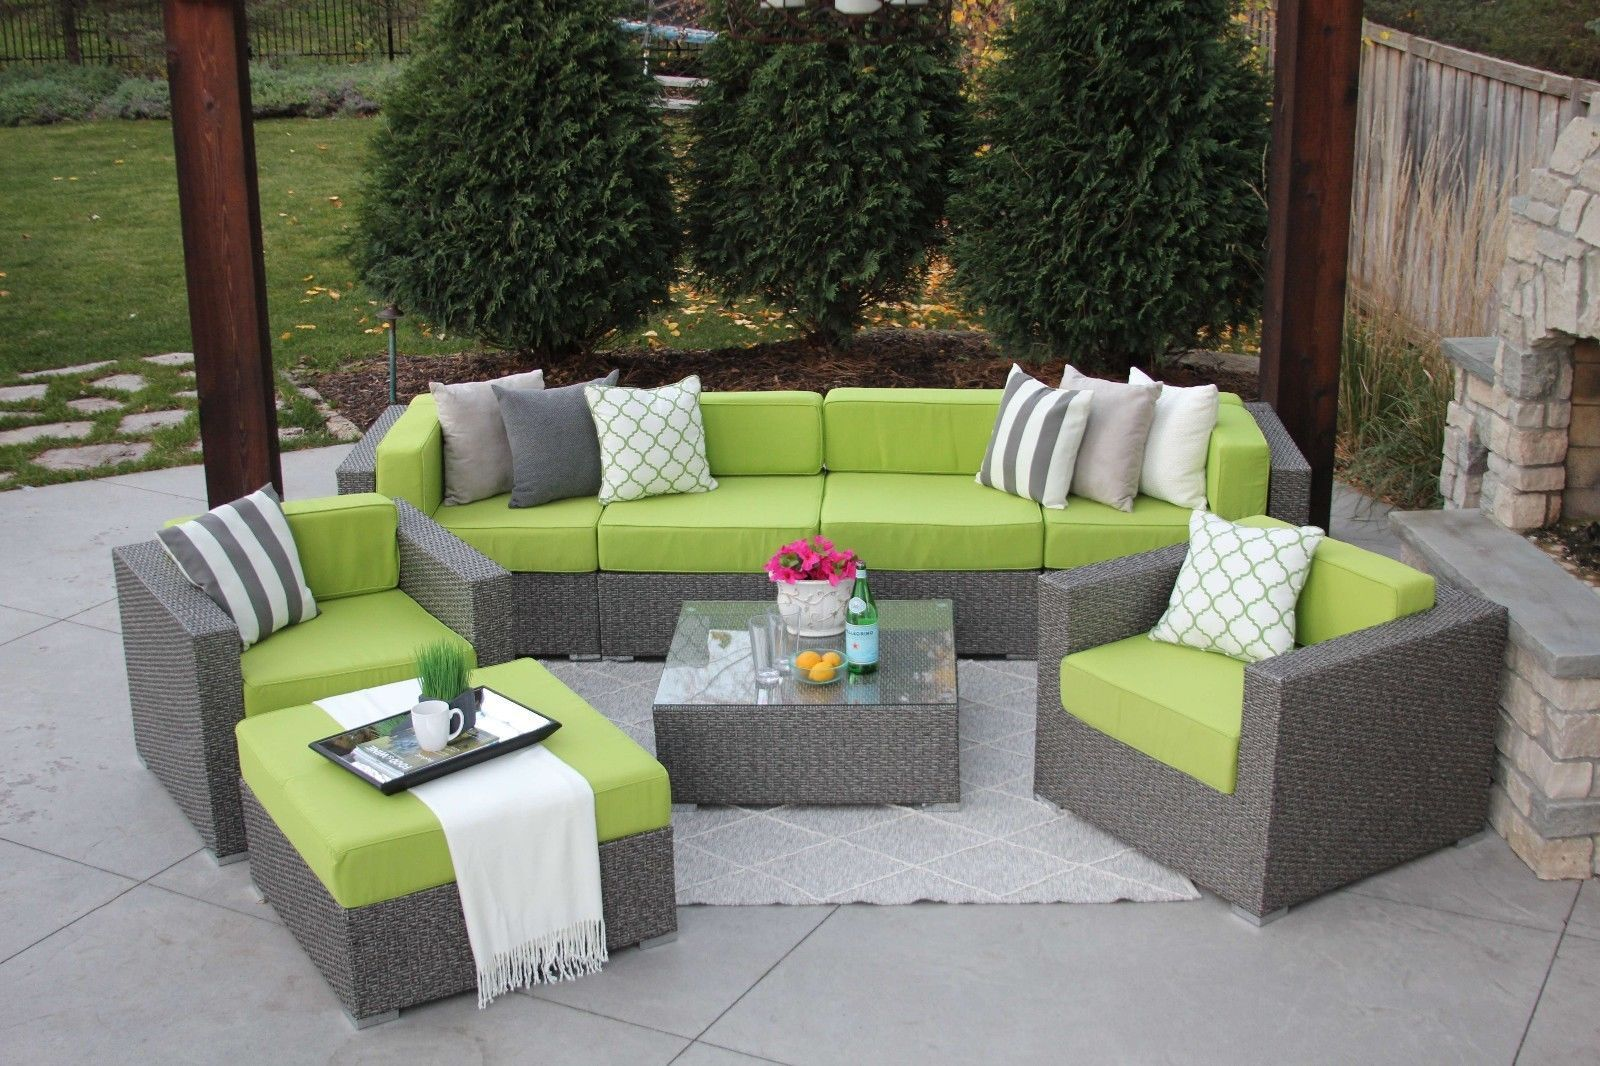 8pc gray wicker modern rattan patio set outdoor sectional. Black Bedroom Furniture Sets. Home Design Ideas